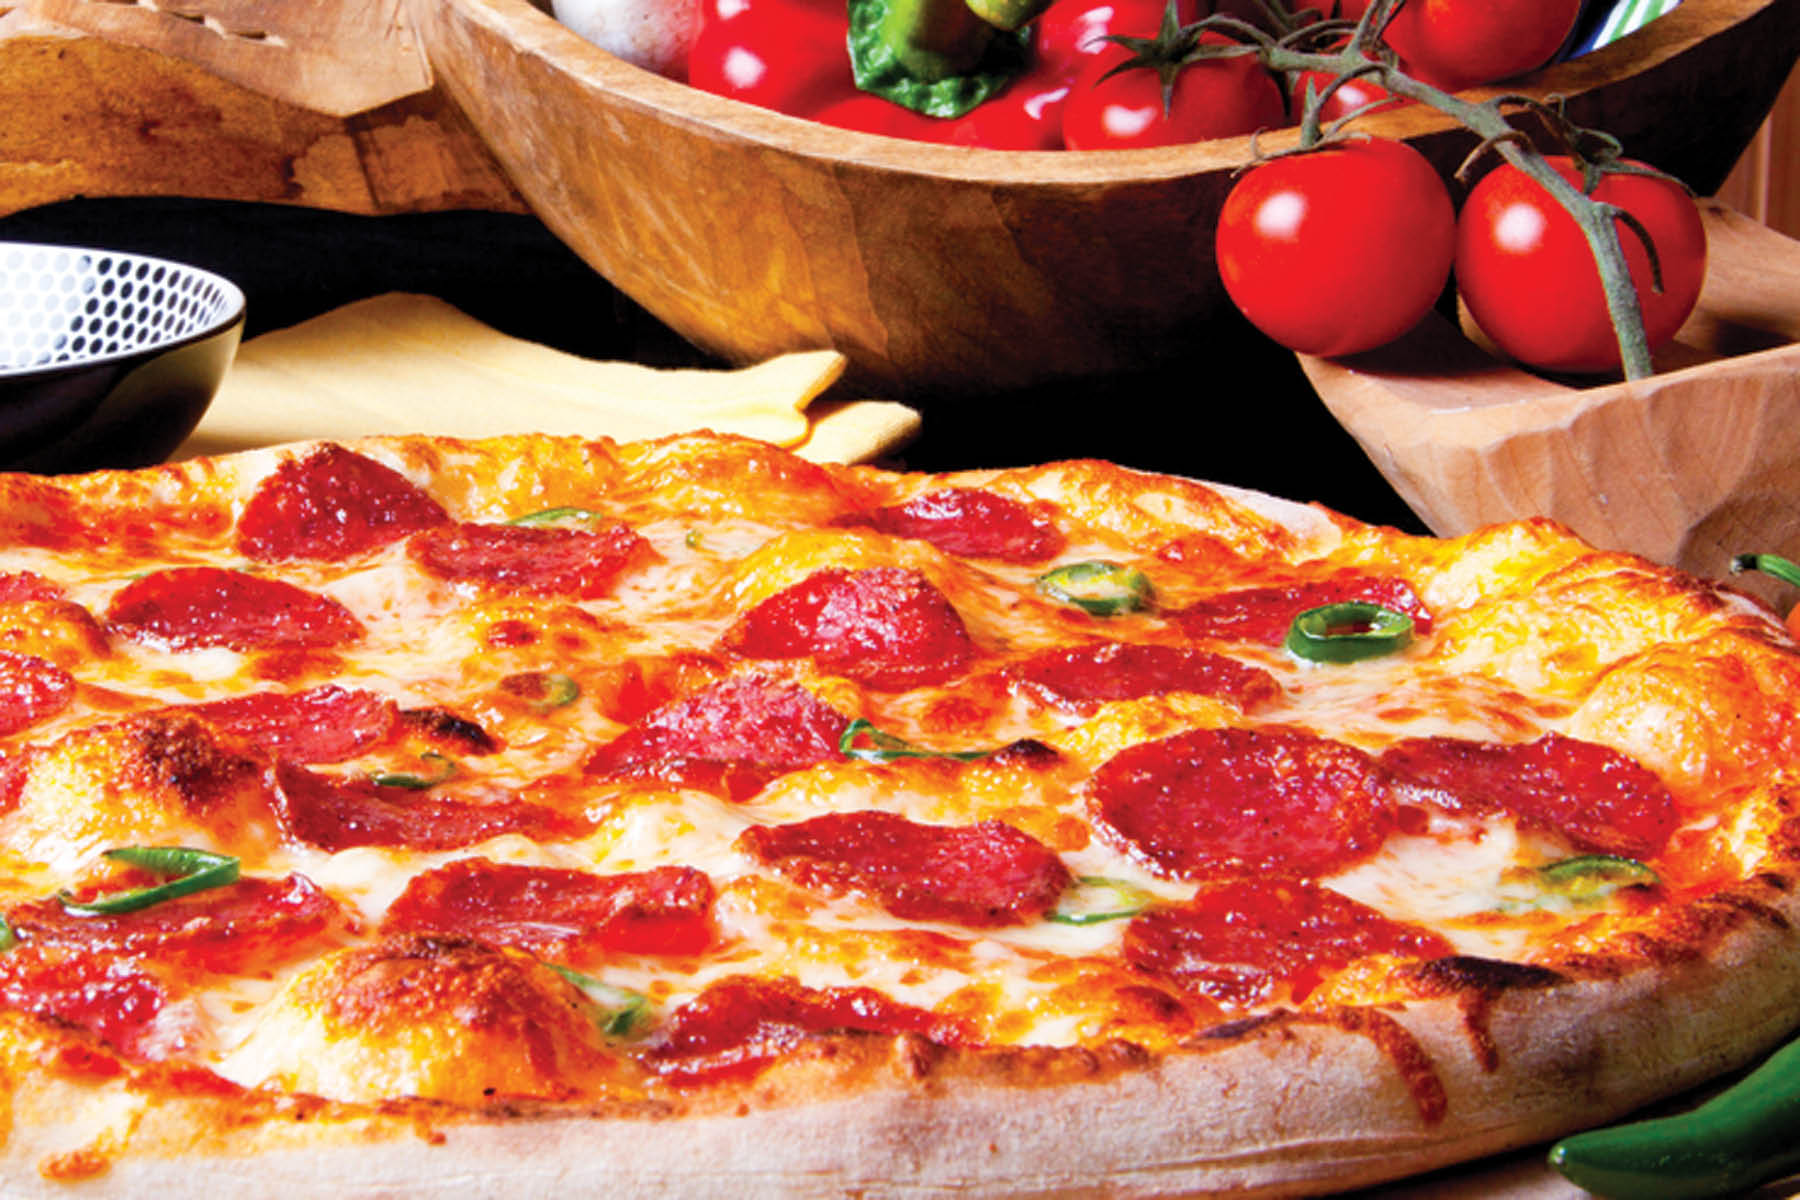 pizza hotline in la plata, maryland and Charlotte Hall, MD.  Pizza in Charles County.  Pizza in St. Mary's County, Pizza Delivery,  Fast deliver, pizza carryout.